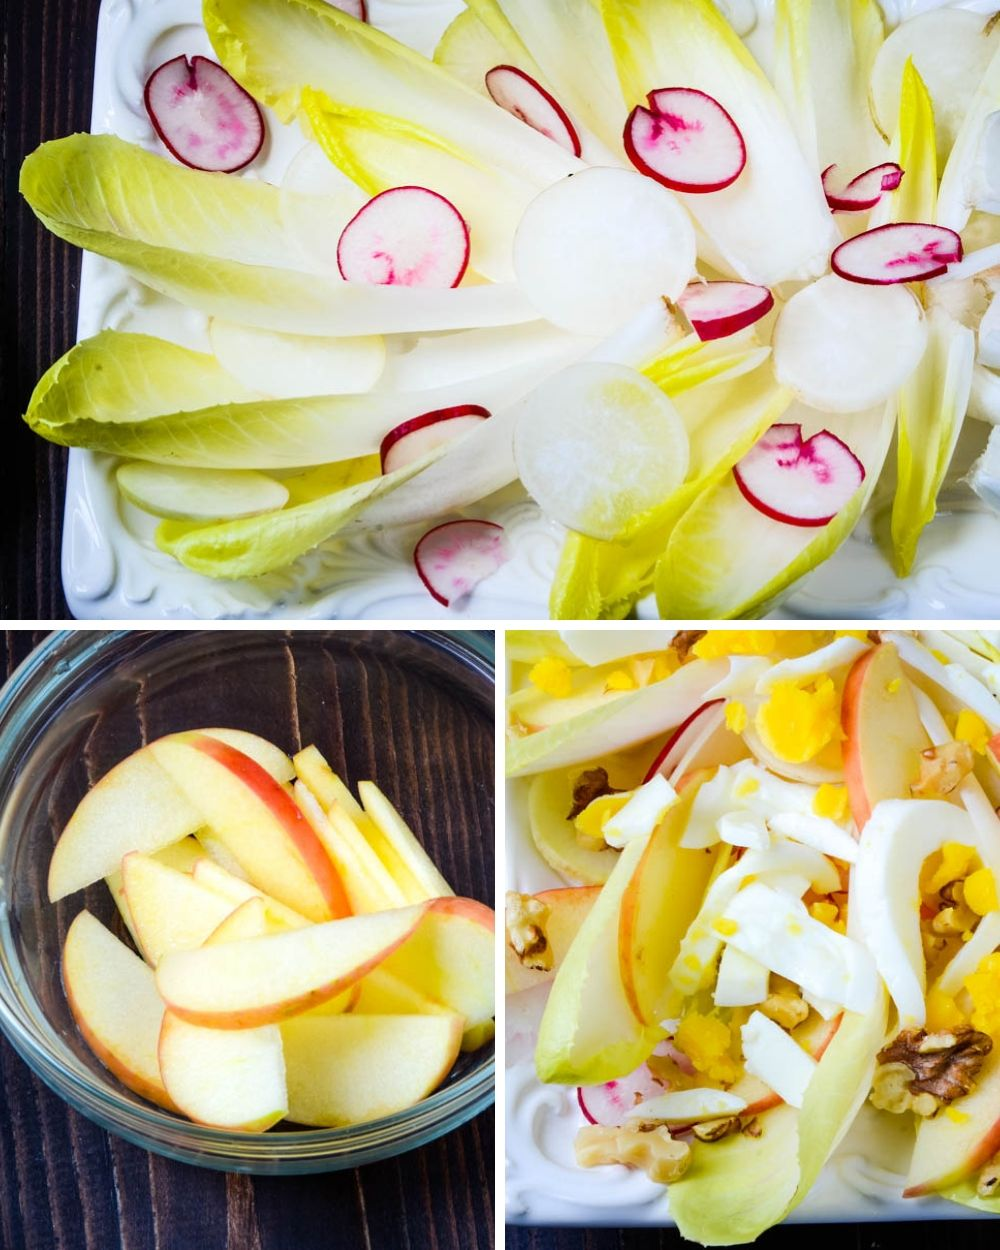 assembling the endive recipe with apples and eggs.